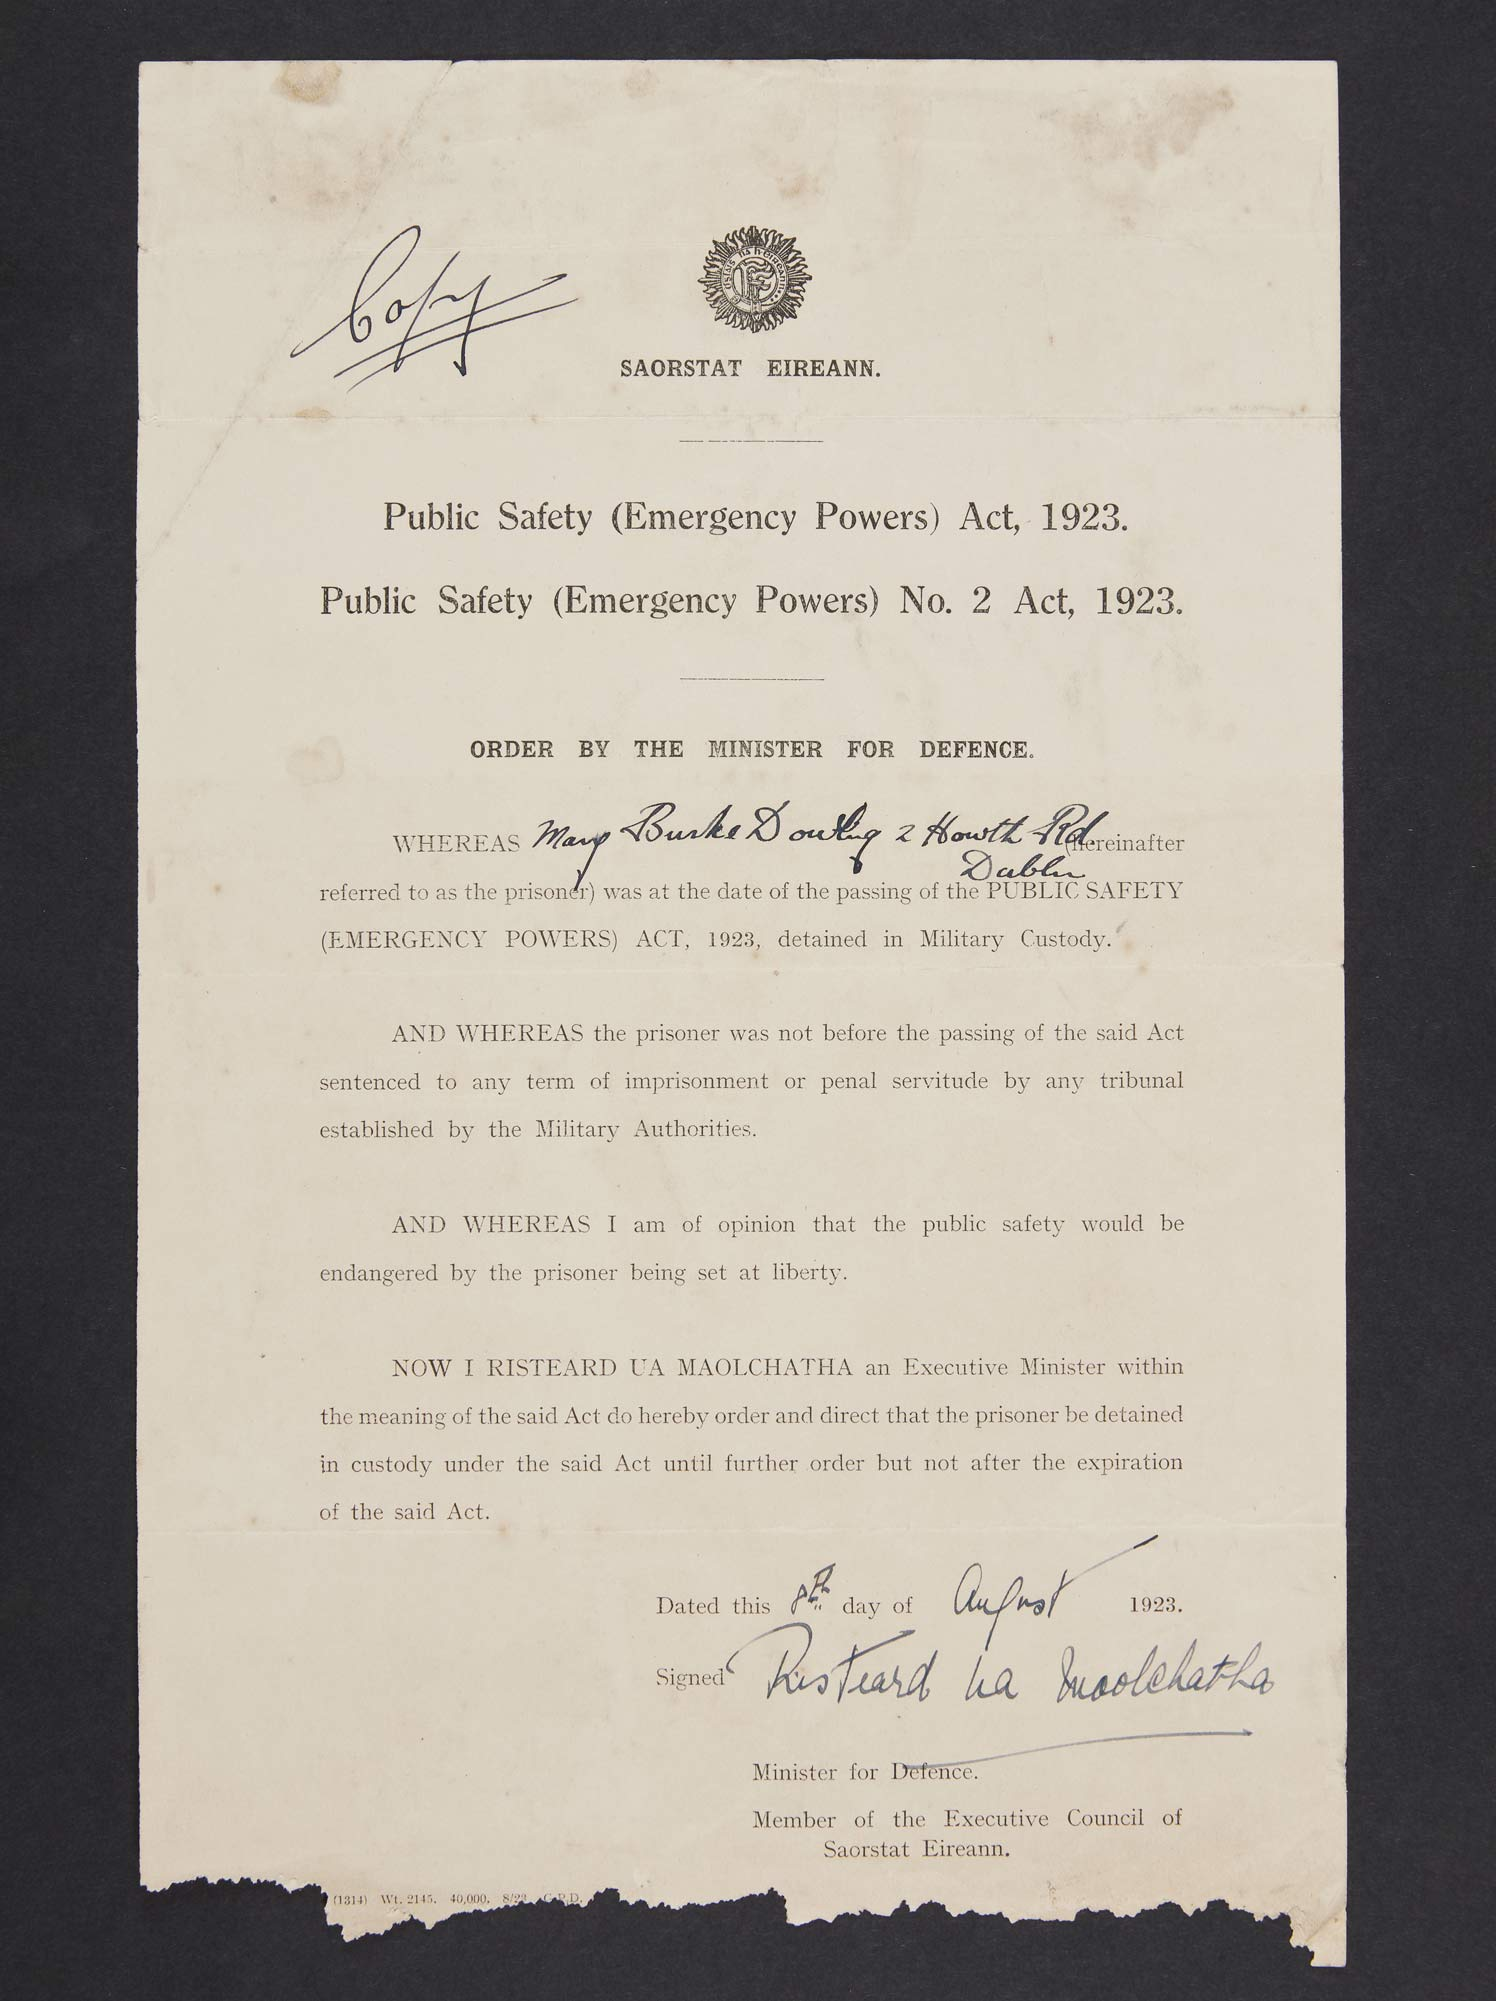 An order for the detention of Mary Bourke-Dowling, signed in August 1923 by Richard Mulcahy, Minister for Defence